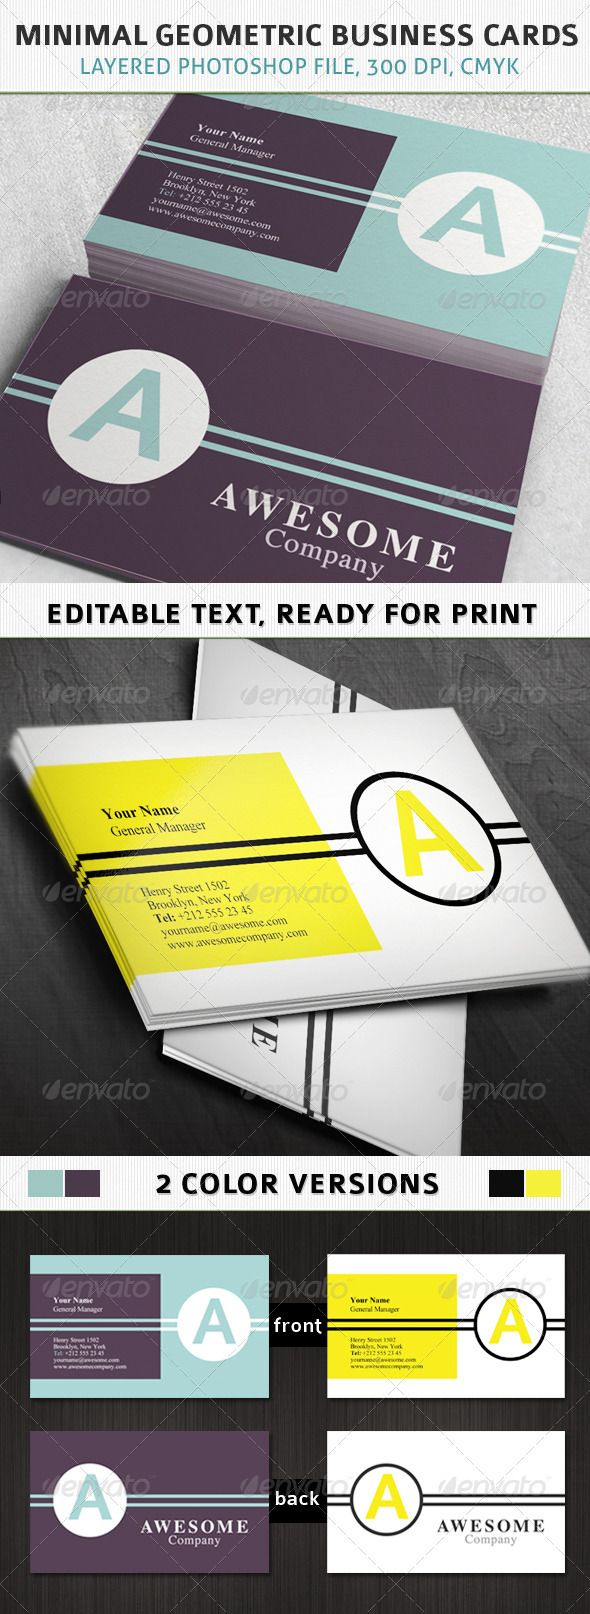 Minimal Geometric Business Cards #graphicriver #template #professional $6